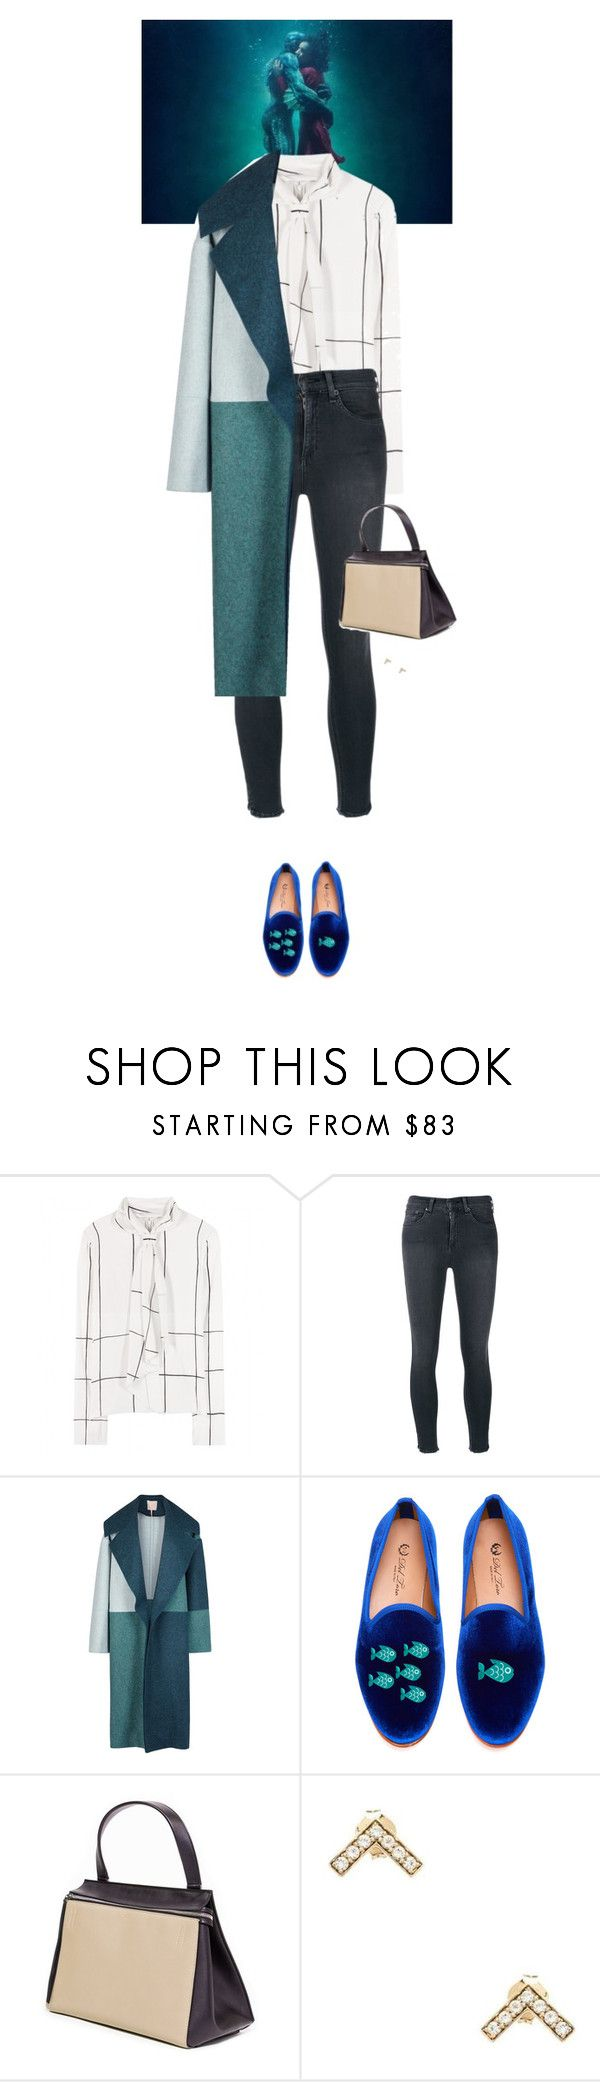 """""""Outfit of the Day"""" by wizmurphy ❤ liked on Polyvore featuring Tory Burch, rag & bone/JEAN, Roksanda, Del Toro, Elizabeth and James, ootd and RoksandaIlincic"""